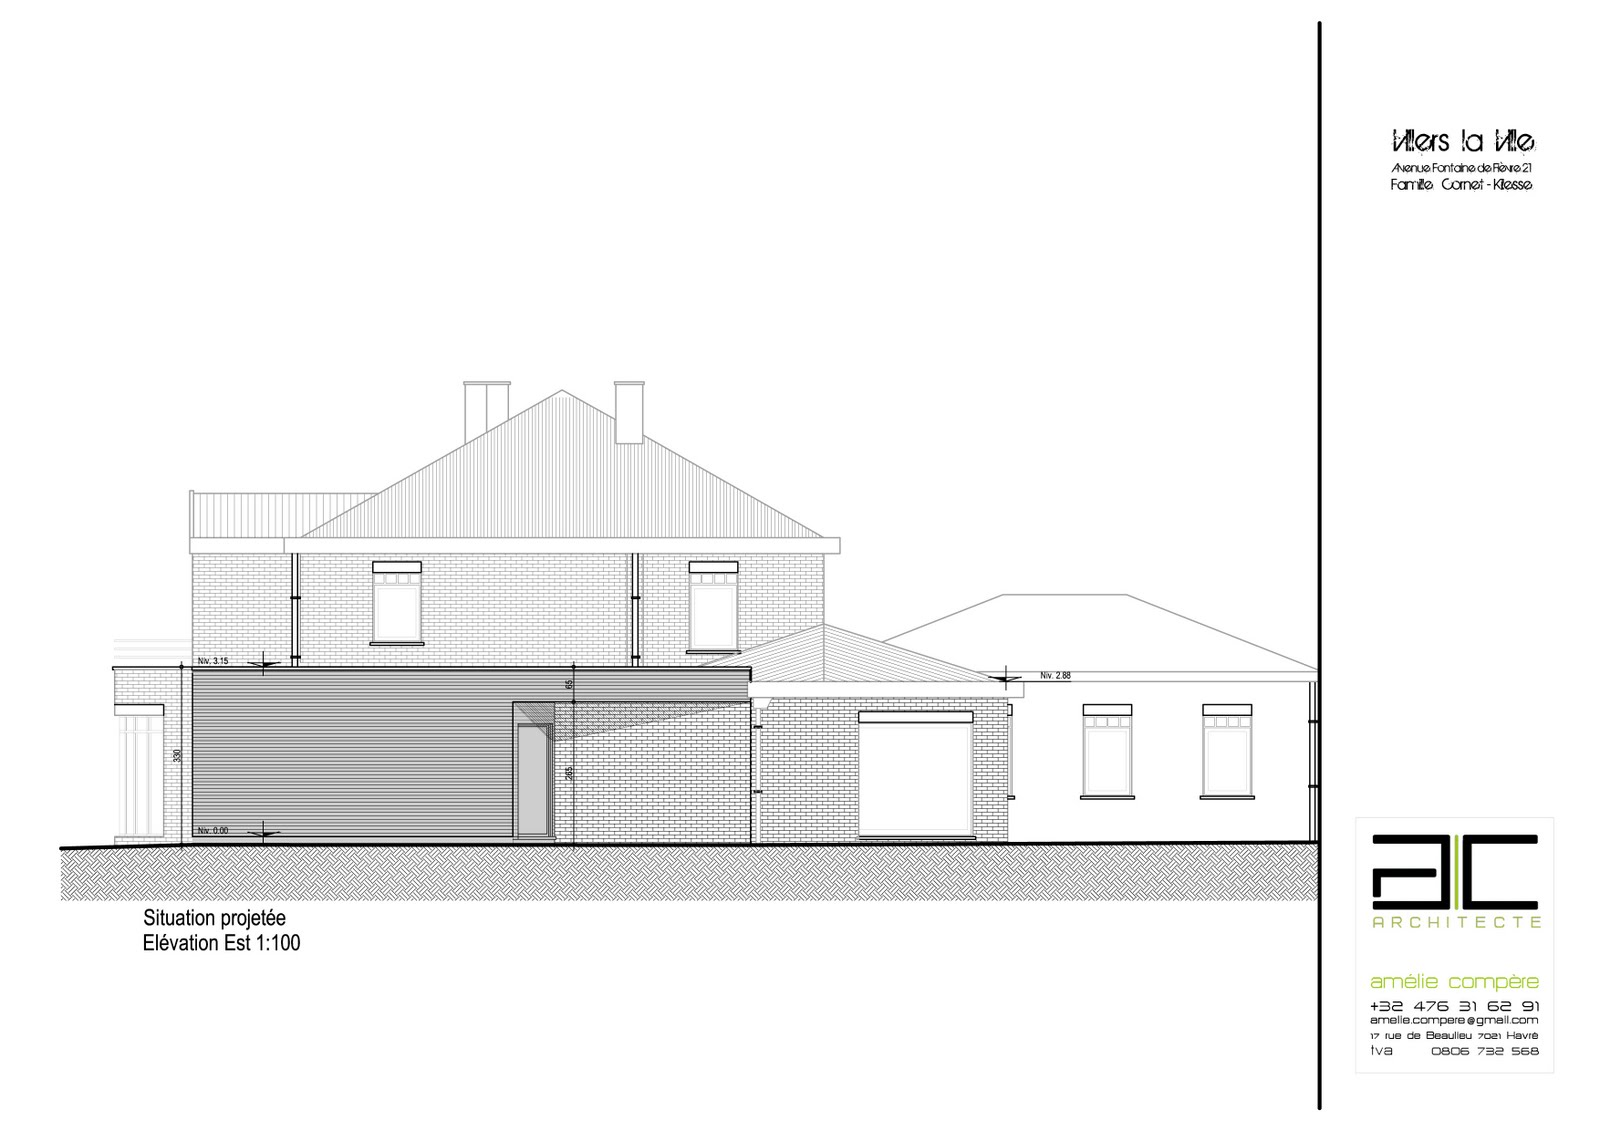 B o o k architecture projet d 39 extension situation for Architecture projet